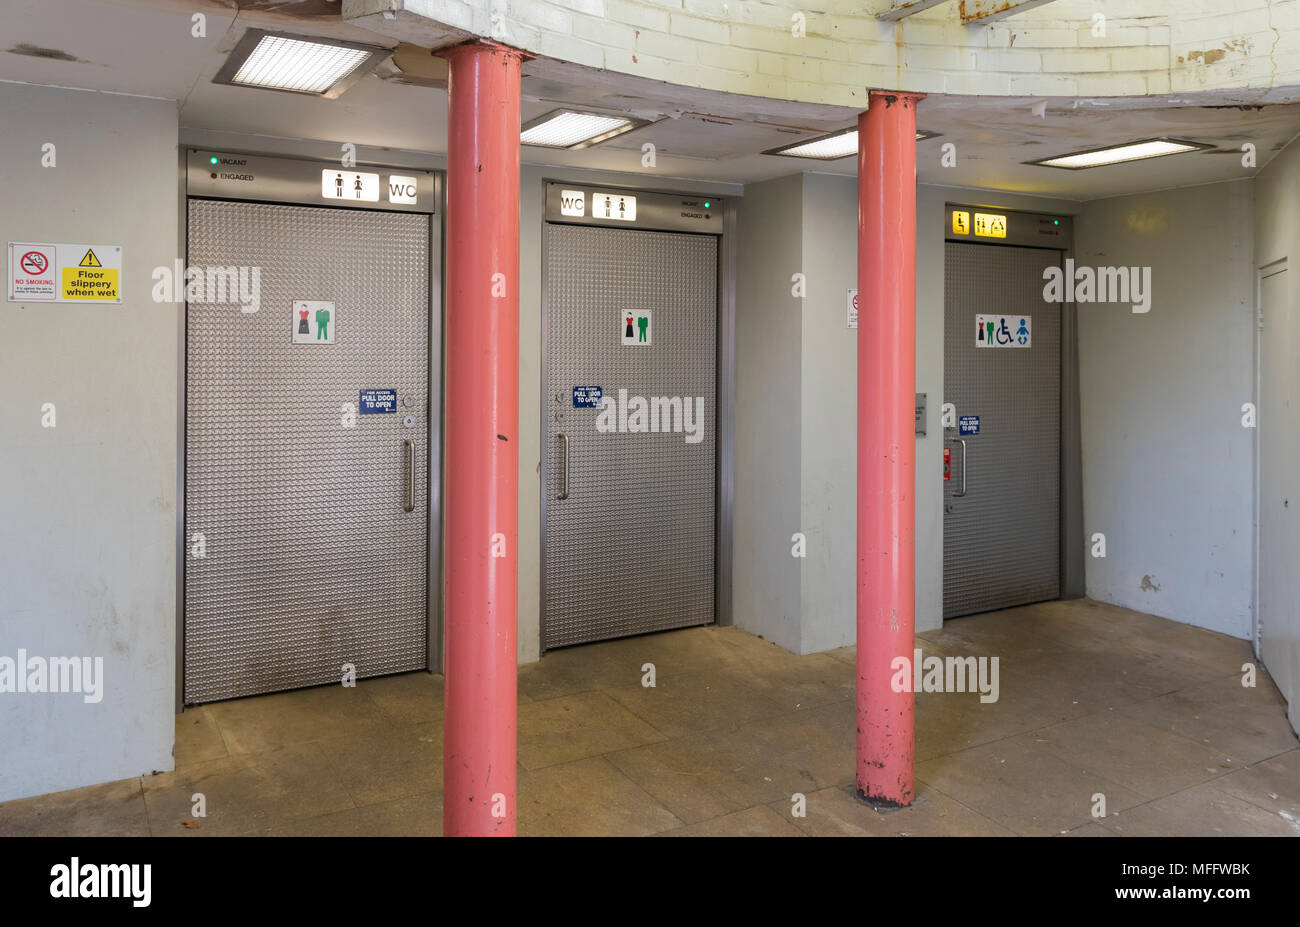 Public toilets with individual and separate cubicles in the UK. - Stock Image